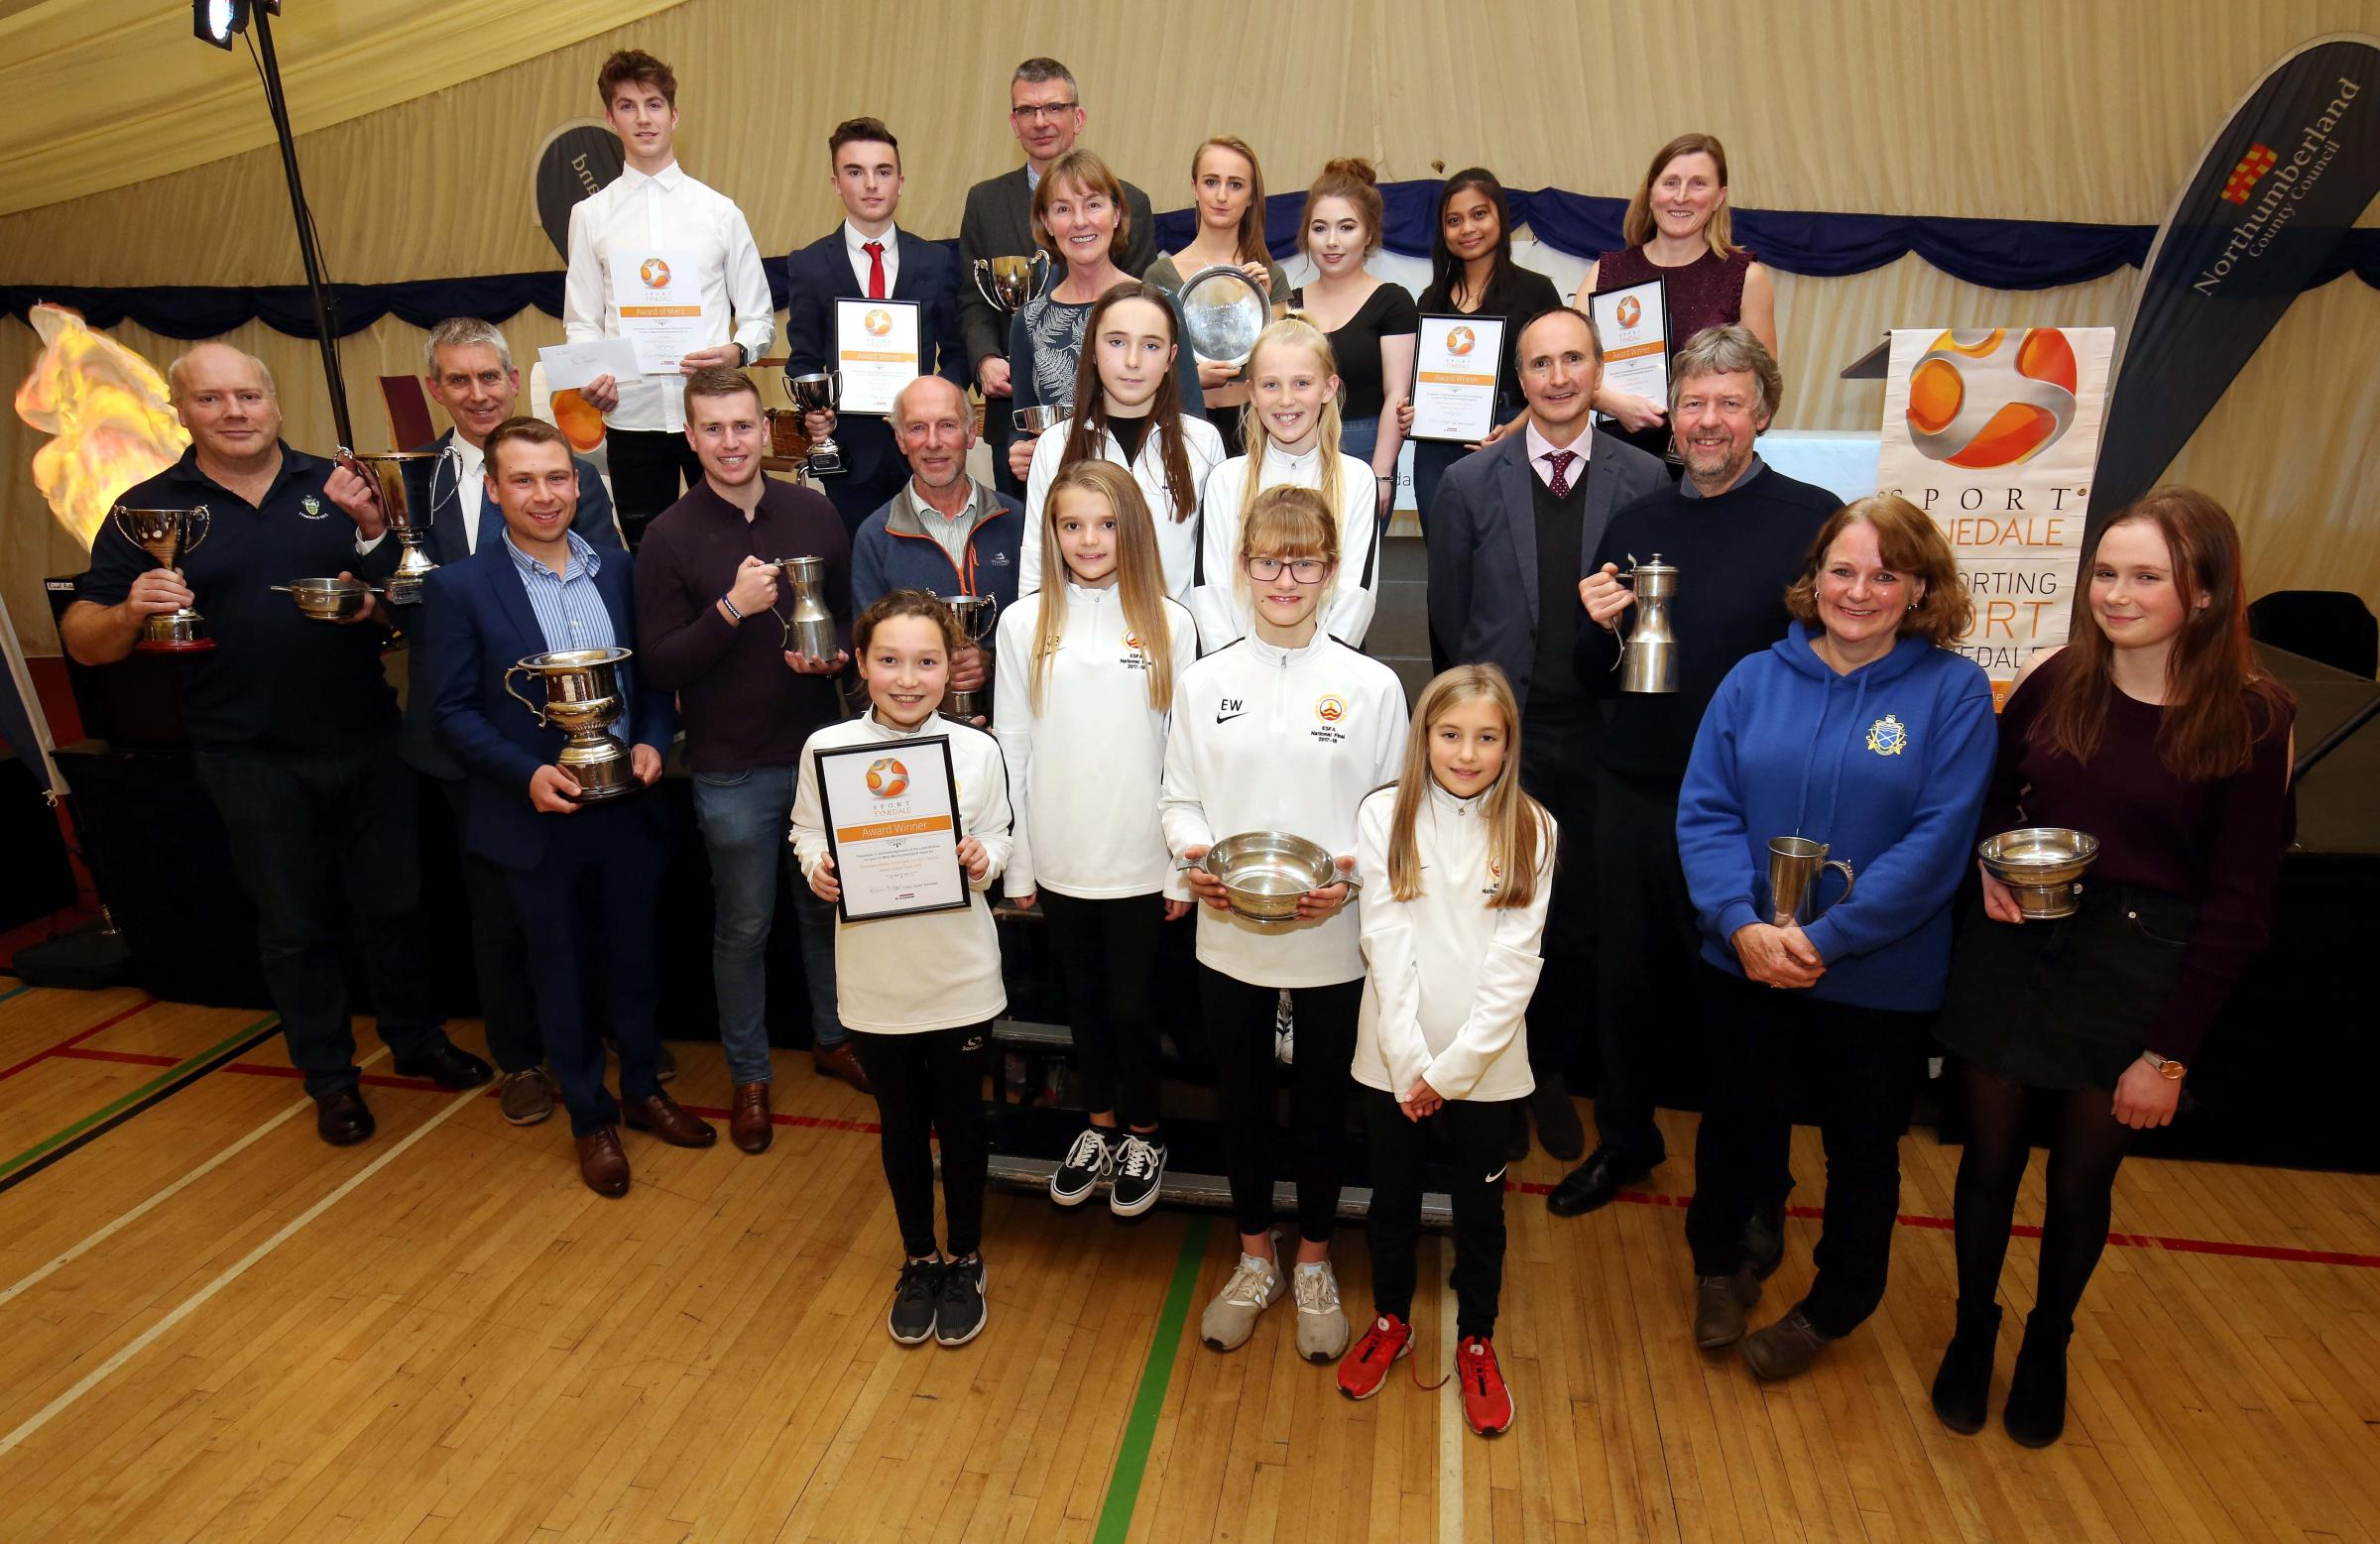 All of the winners at the Sport Tynedale Awards at Wentworth Leisure Centre.